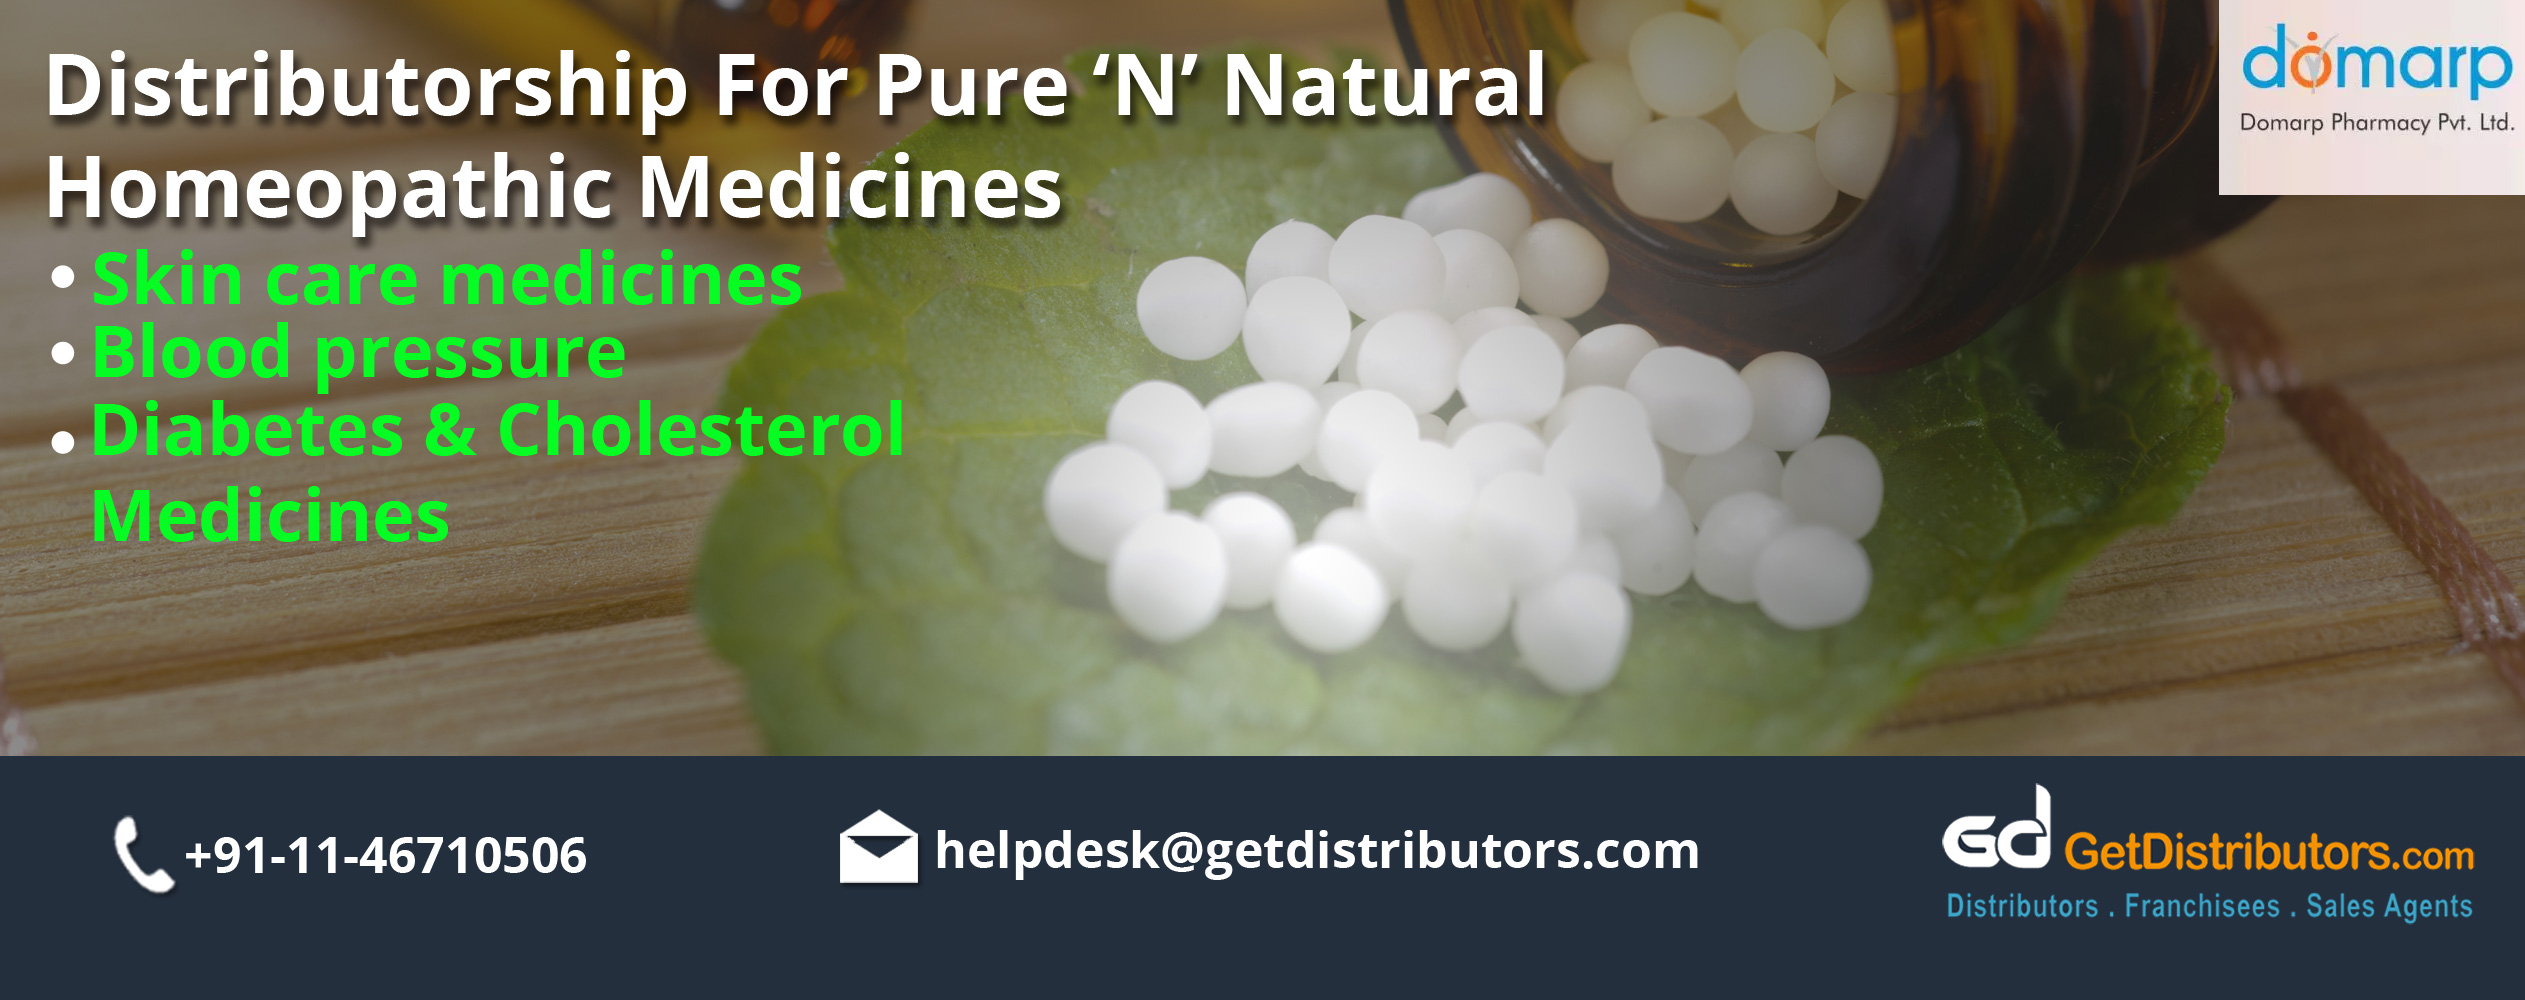 Looking Distributors of Pure & Natural Homeopathic Medicines